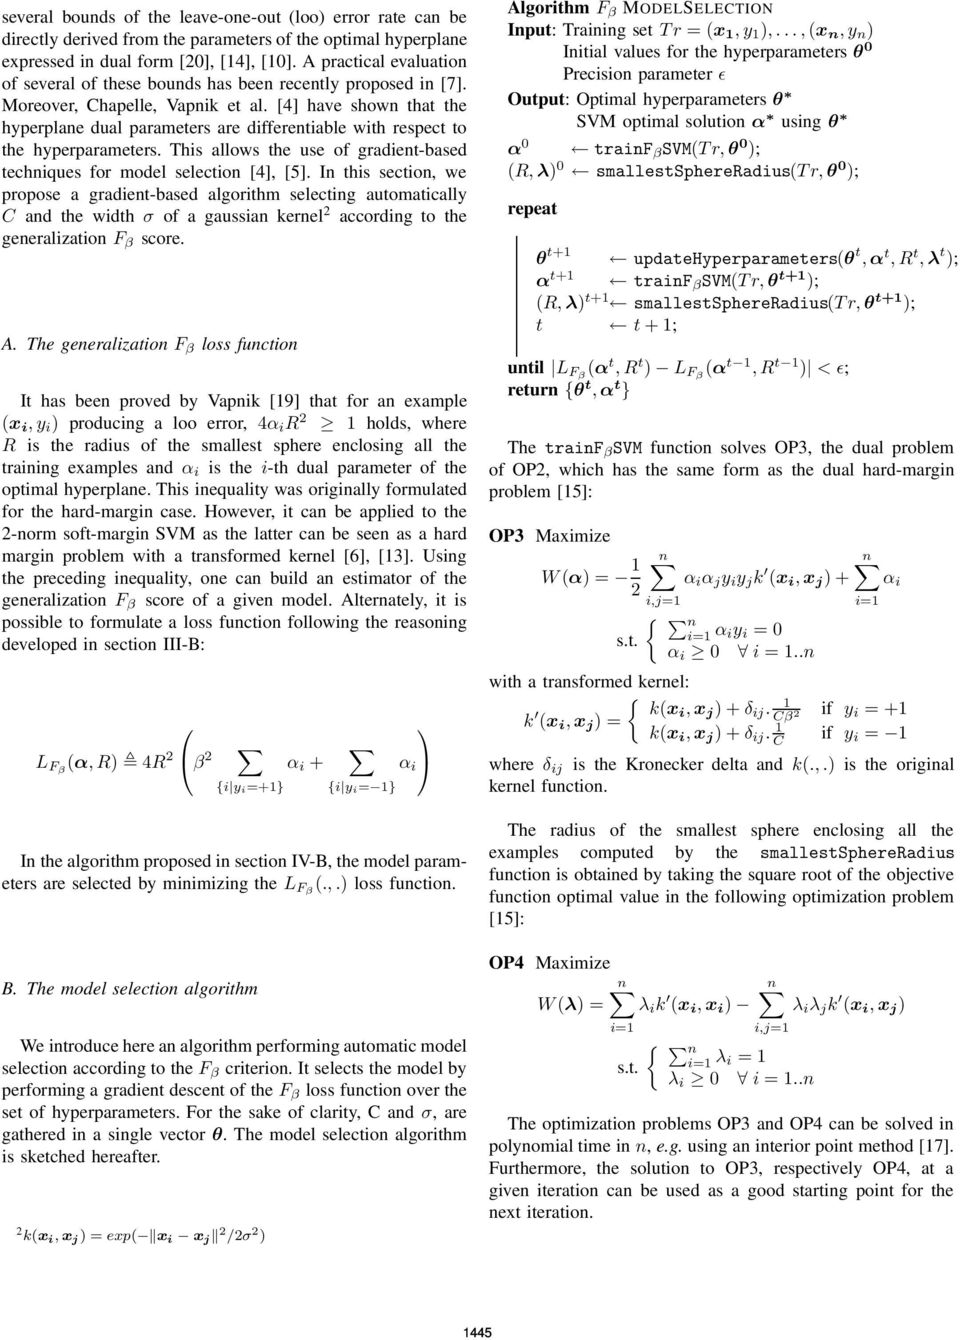 [4] have shown that the hyperplane dual parameters are differentiable with respect to the hyperparameters. This allows the use of gradient-based techniques for model selection [4], [5].